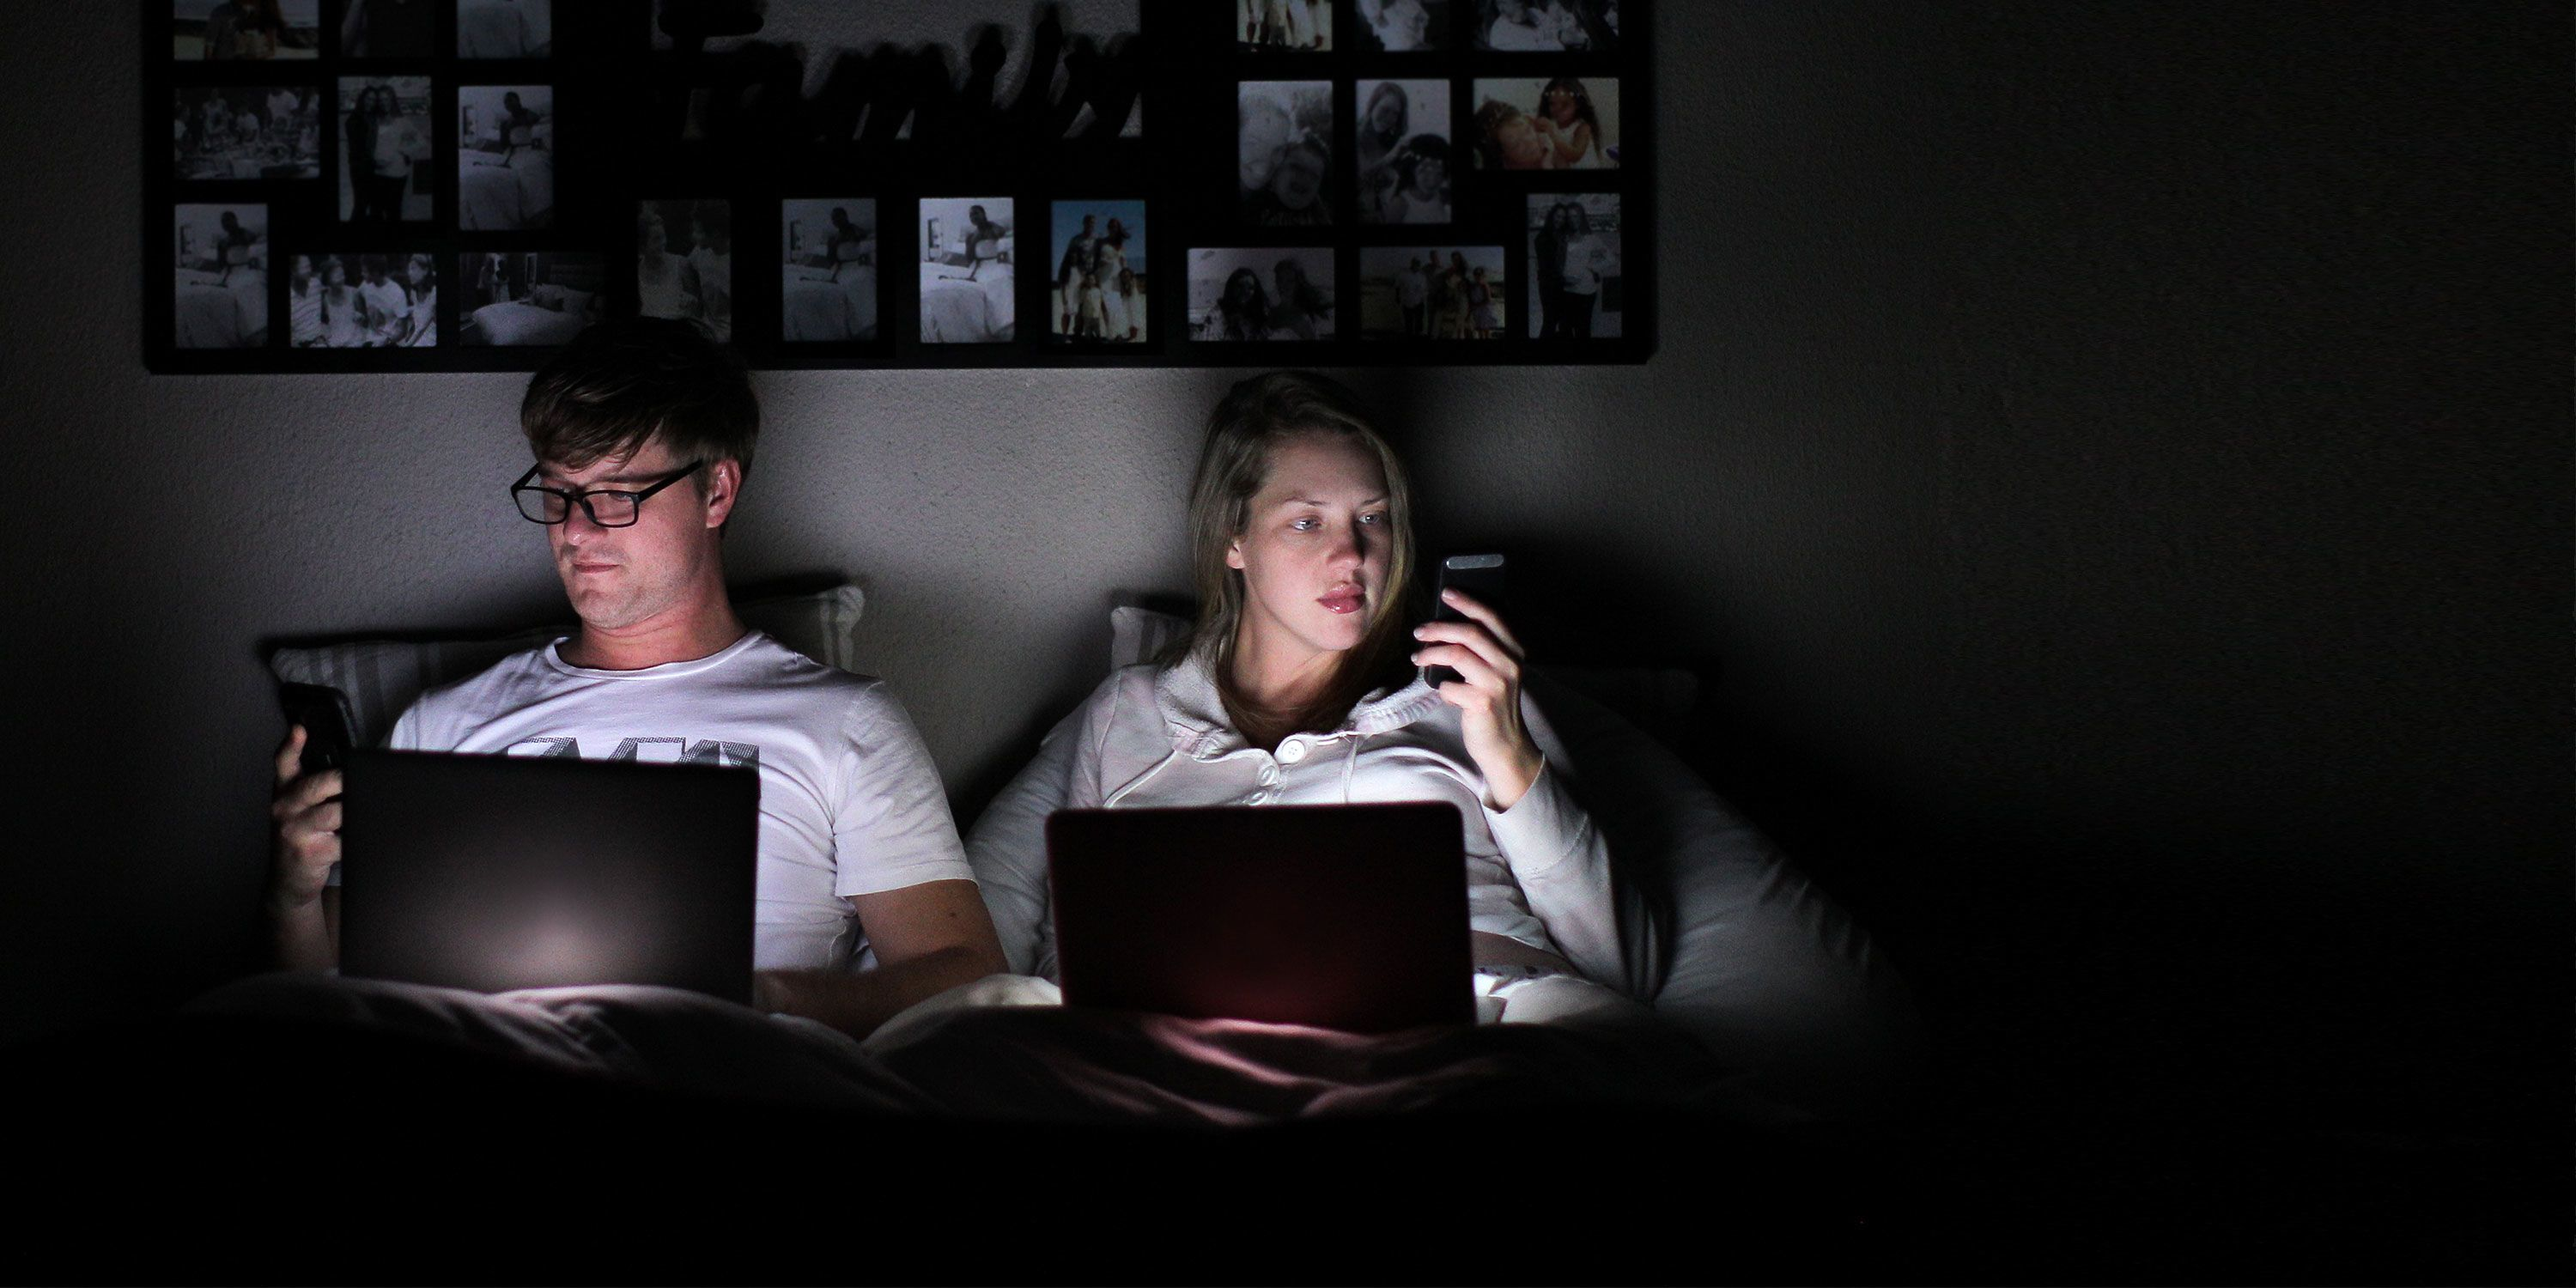 A man and woman sit together in the dark on their bed against a wall. They both have laptops open on their lap and are looking at their cellphones not interacting with each other.